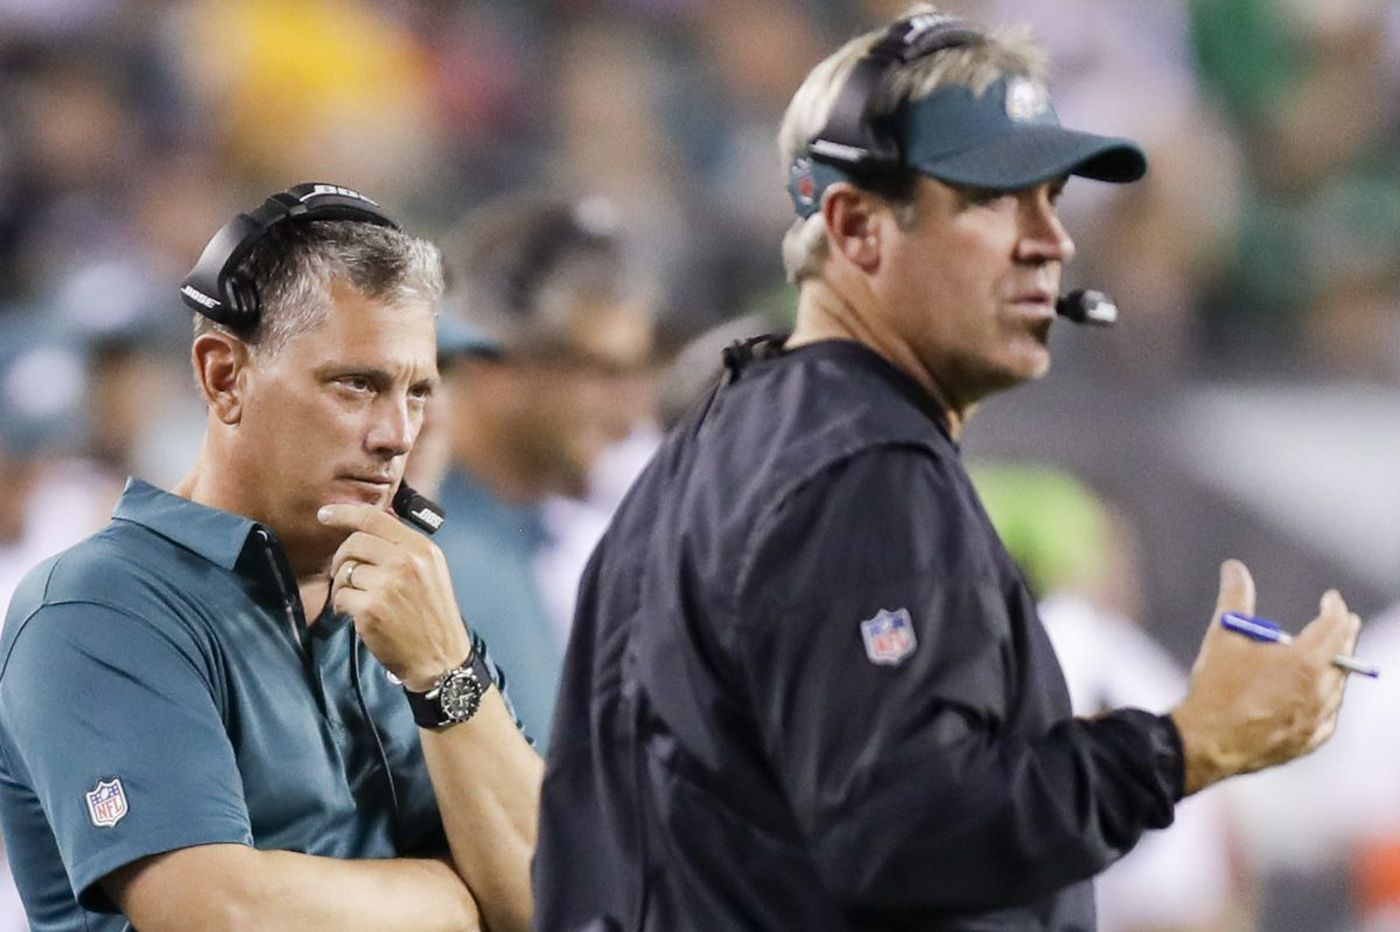 Eagles don't think less playing time in preseason games is a problem for starting defense